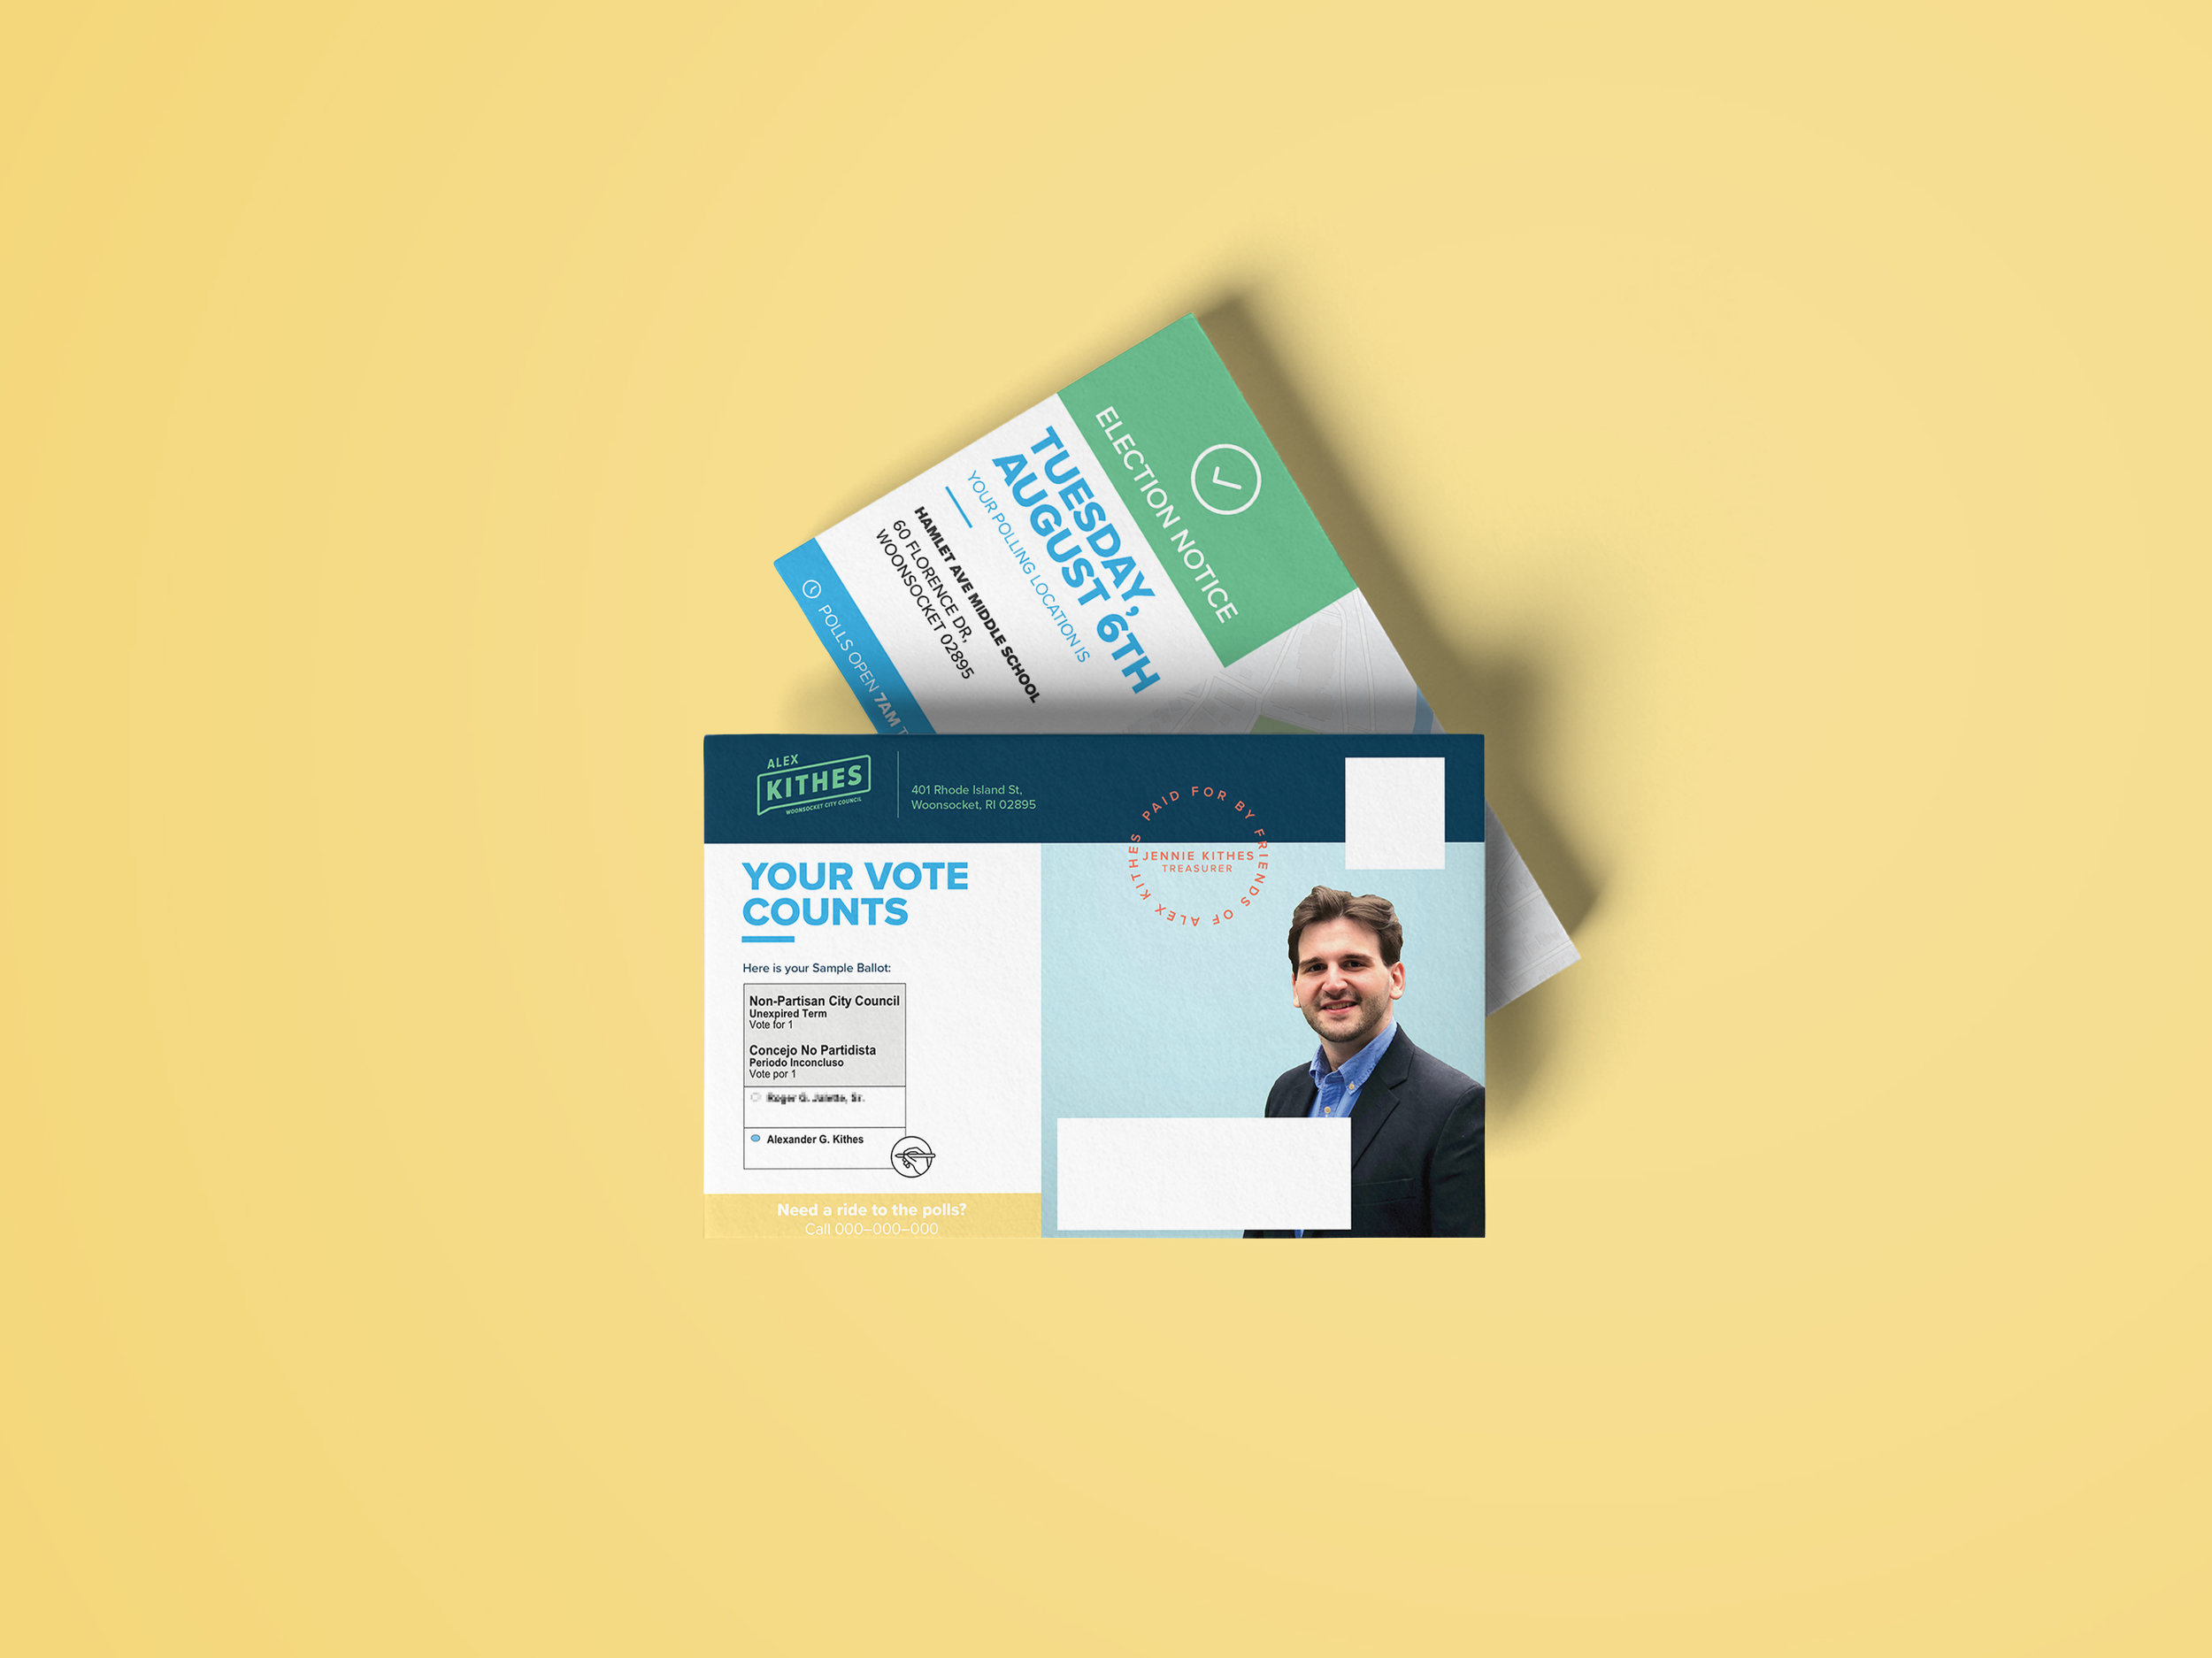 Kithes Mailer Front & Back